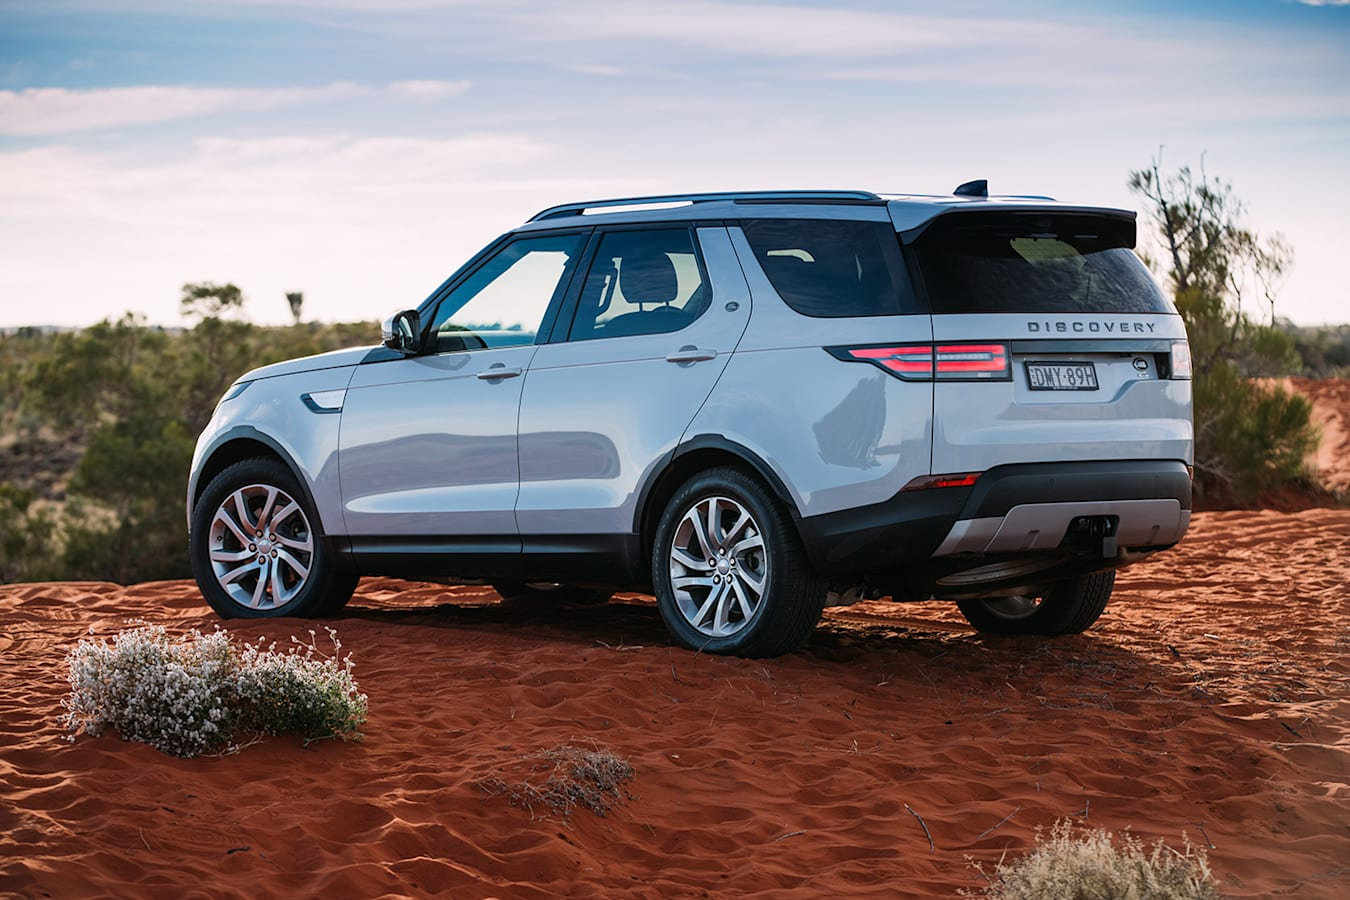 Land Rover Discovery Rear Jpg